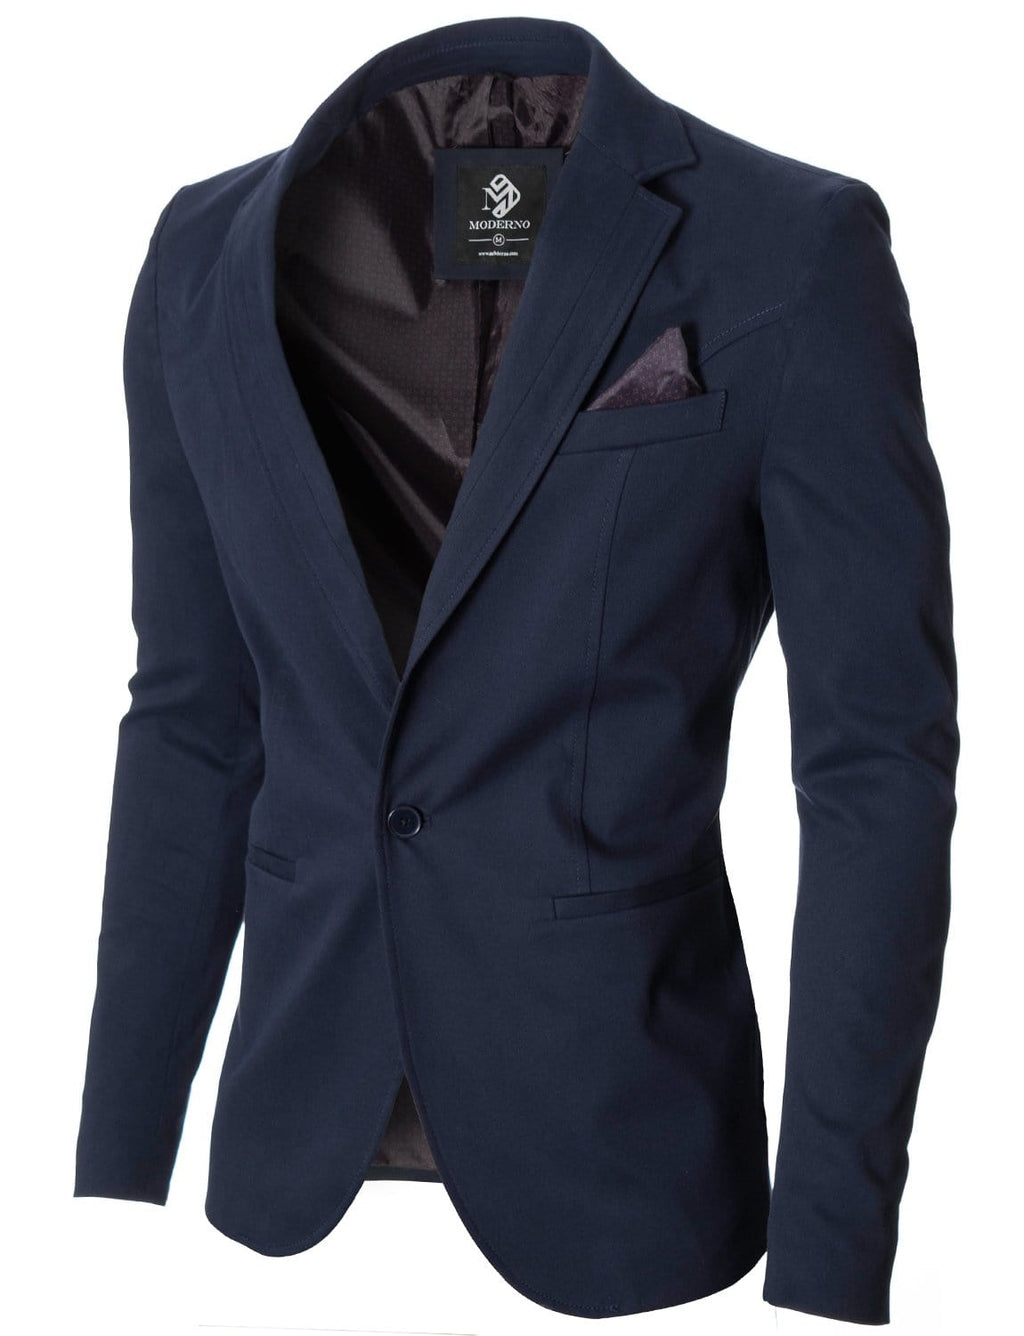 Mens slim fit cotton business blazer navy (MOD14519B)